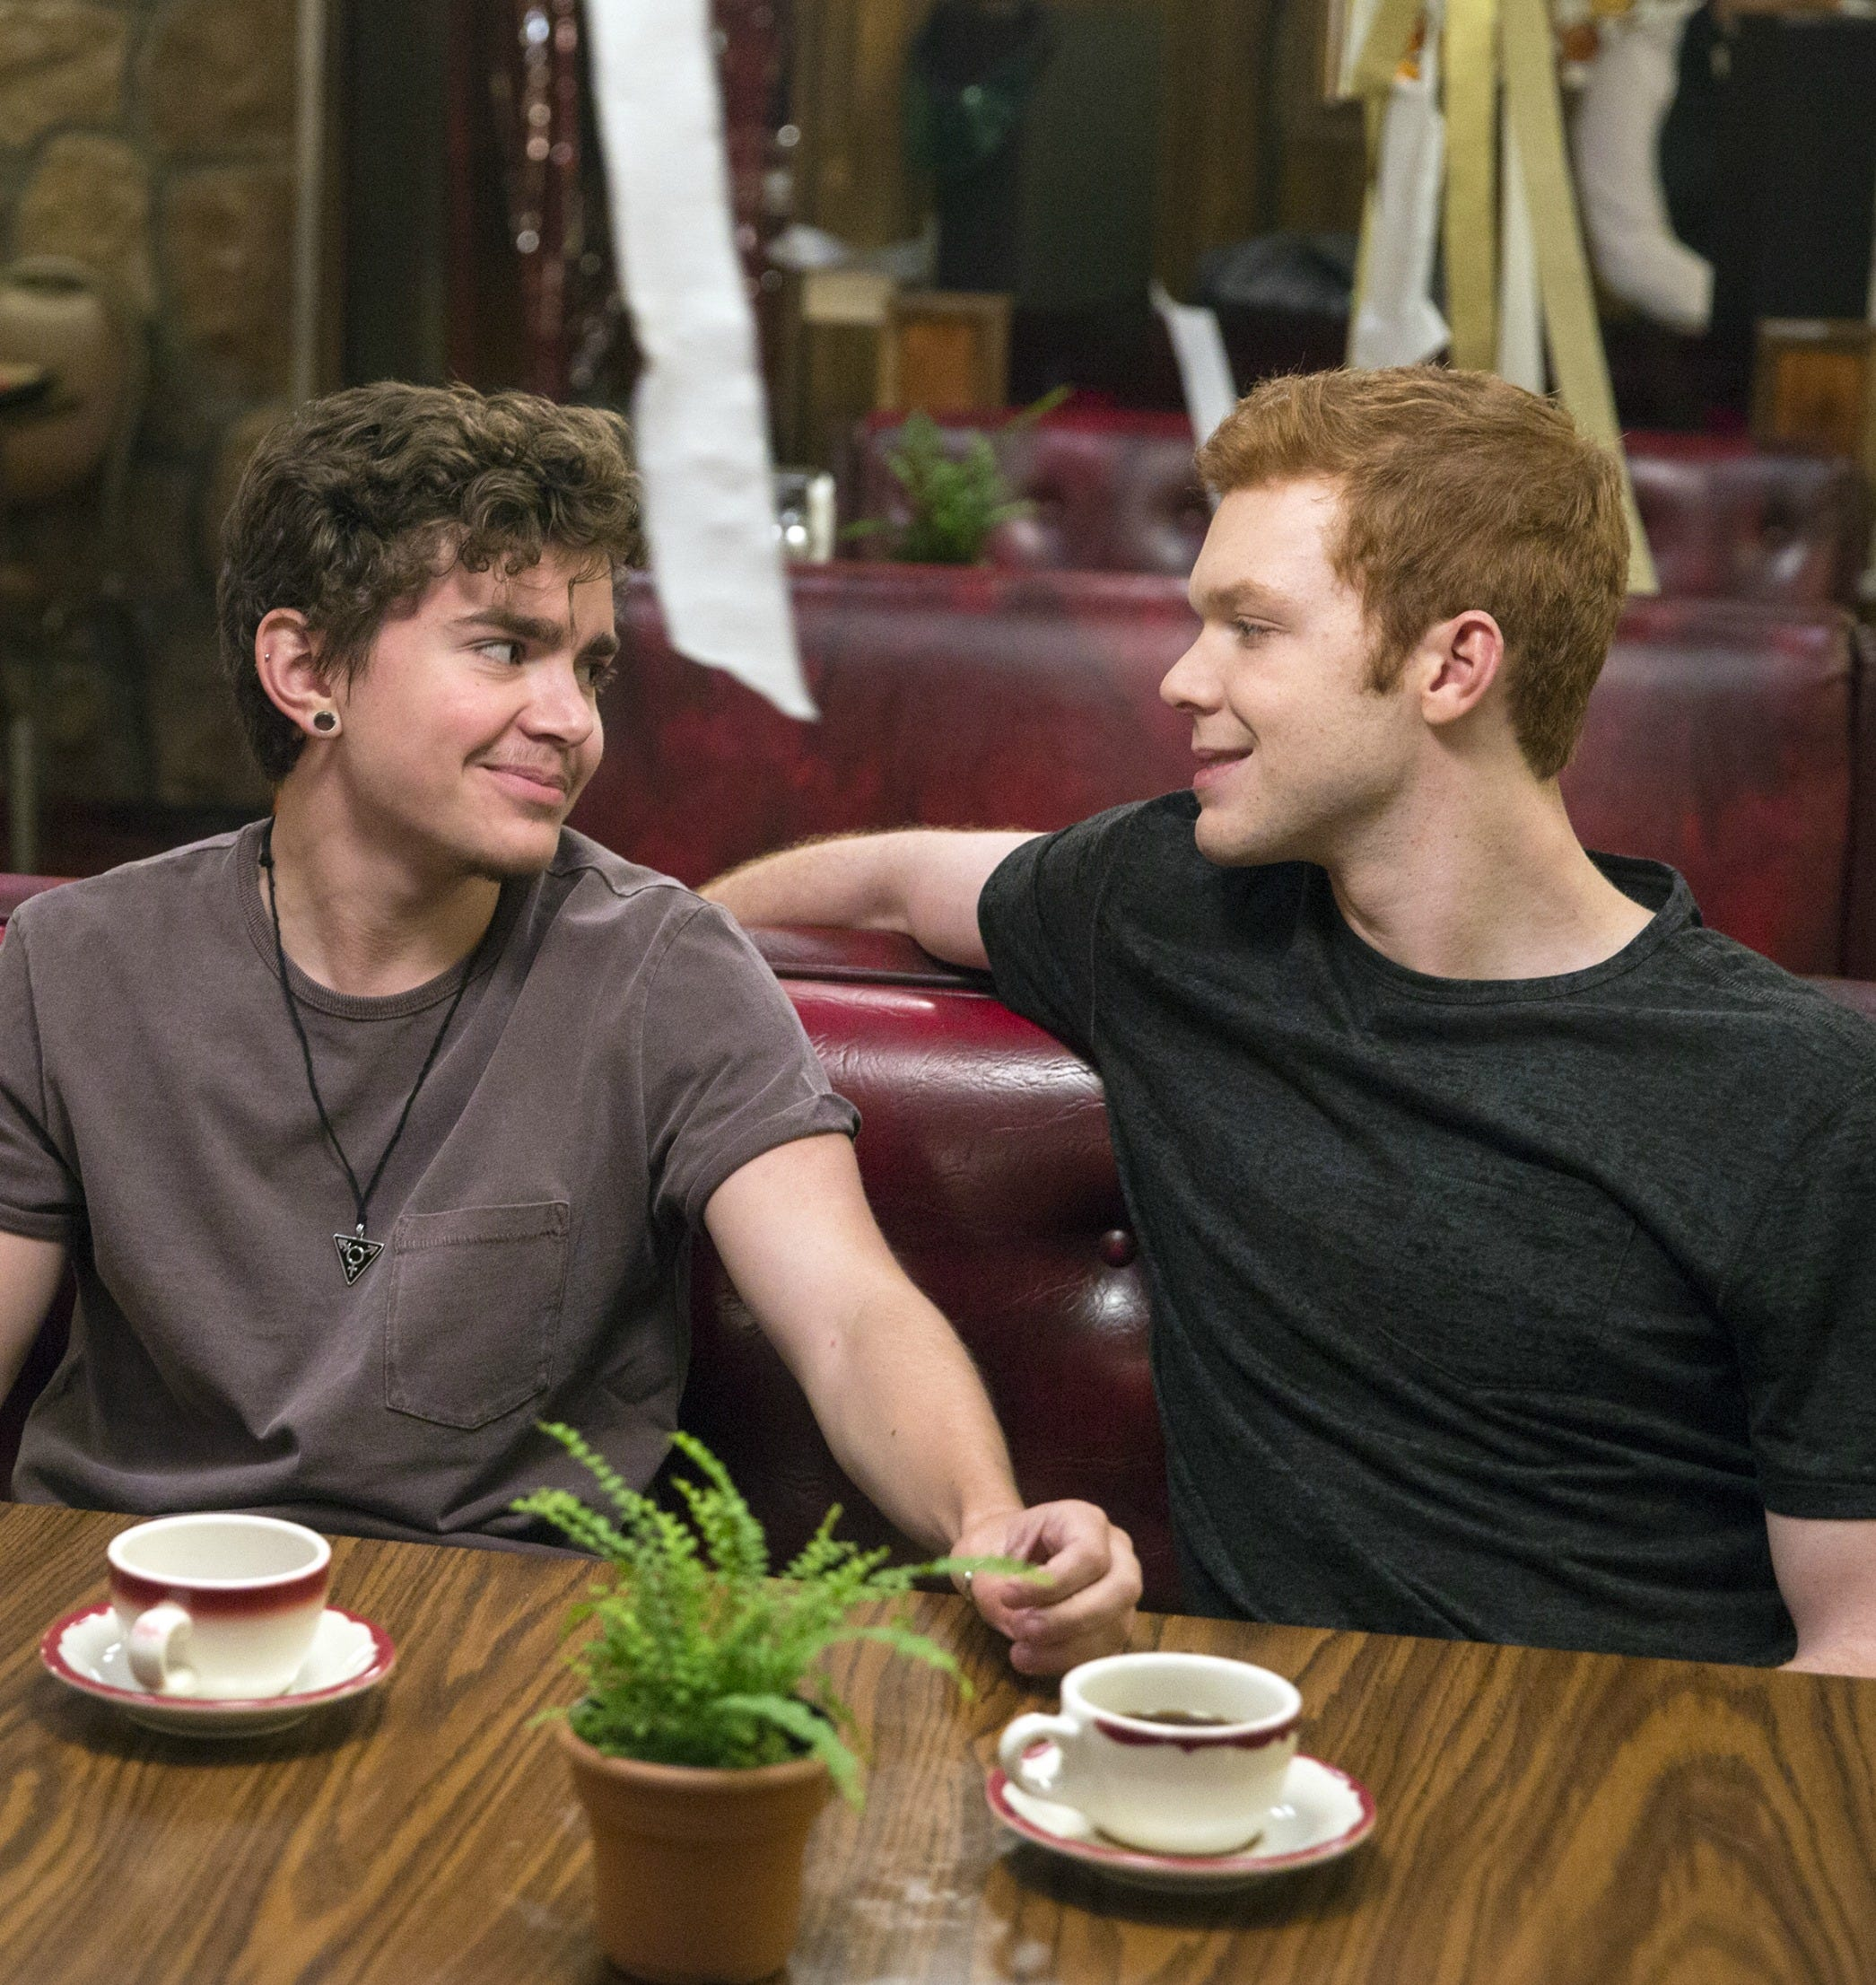 Polyamory married and dating showtime cast of shameless